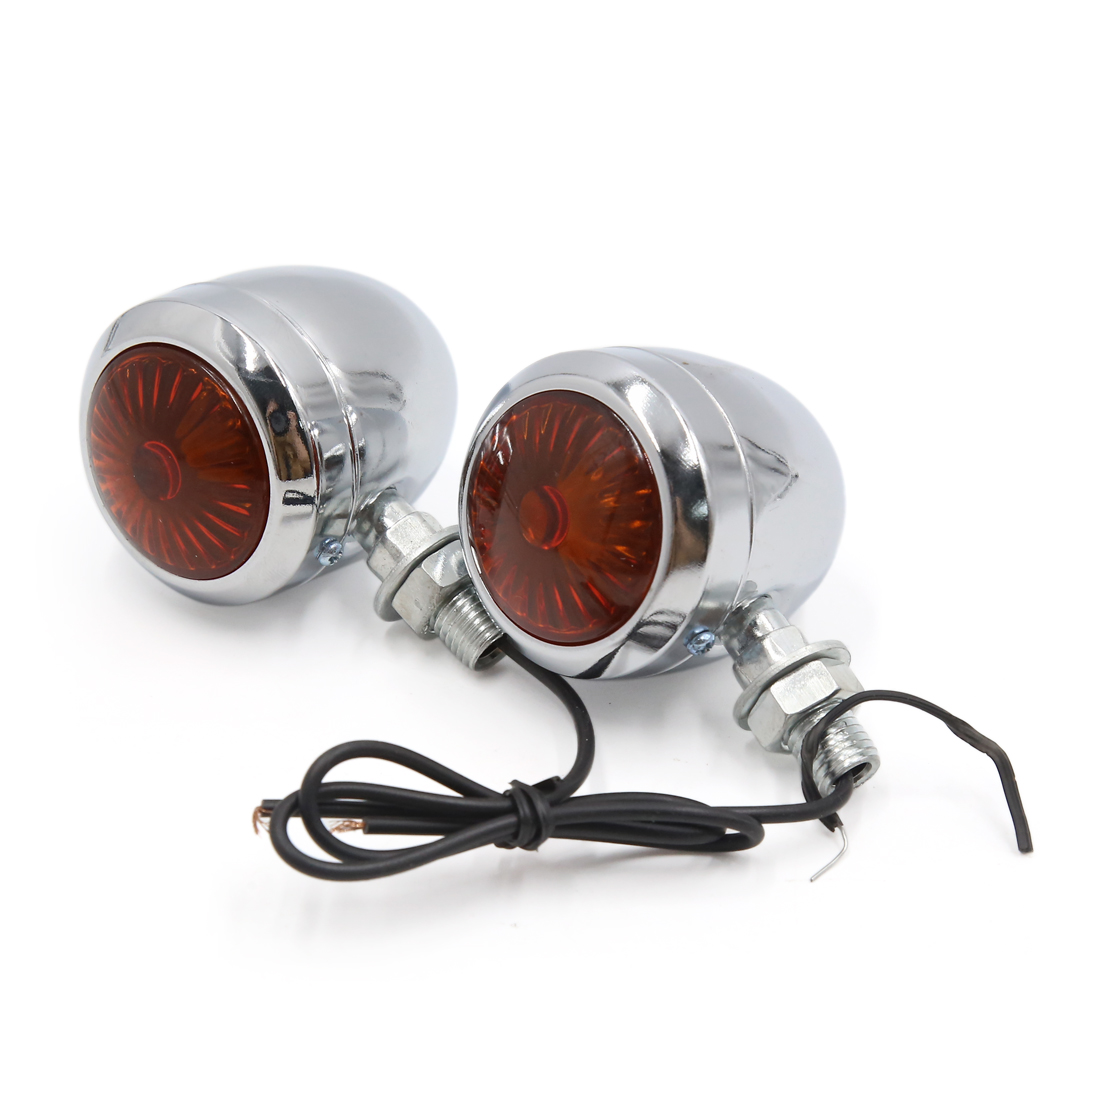 2Pcs Silver Tone Shell Yellow Turn Signal Light Driving Lamp Bulb for Motorcycle